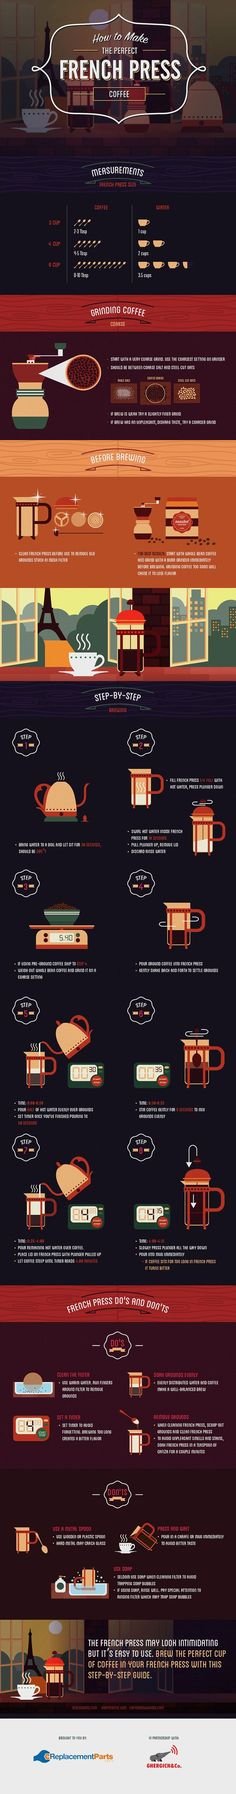 How to Make the Perfect French Press [INFOGRAPHIC]